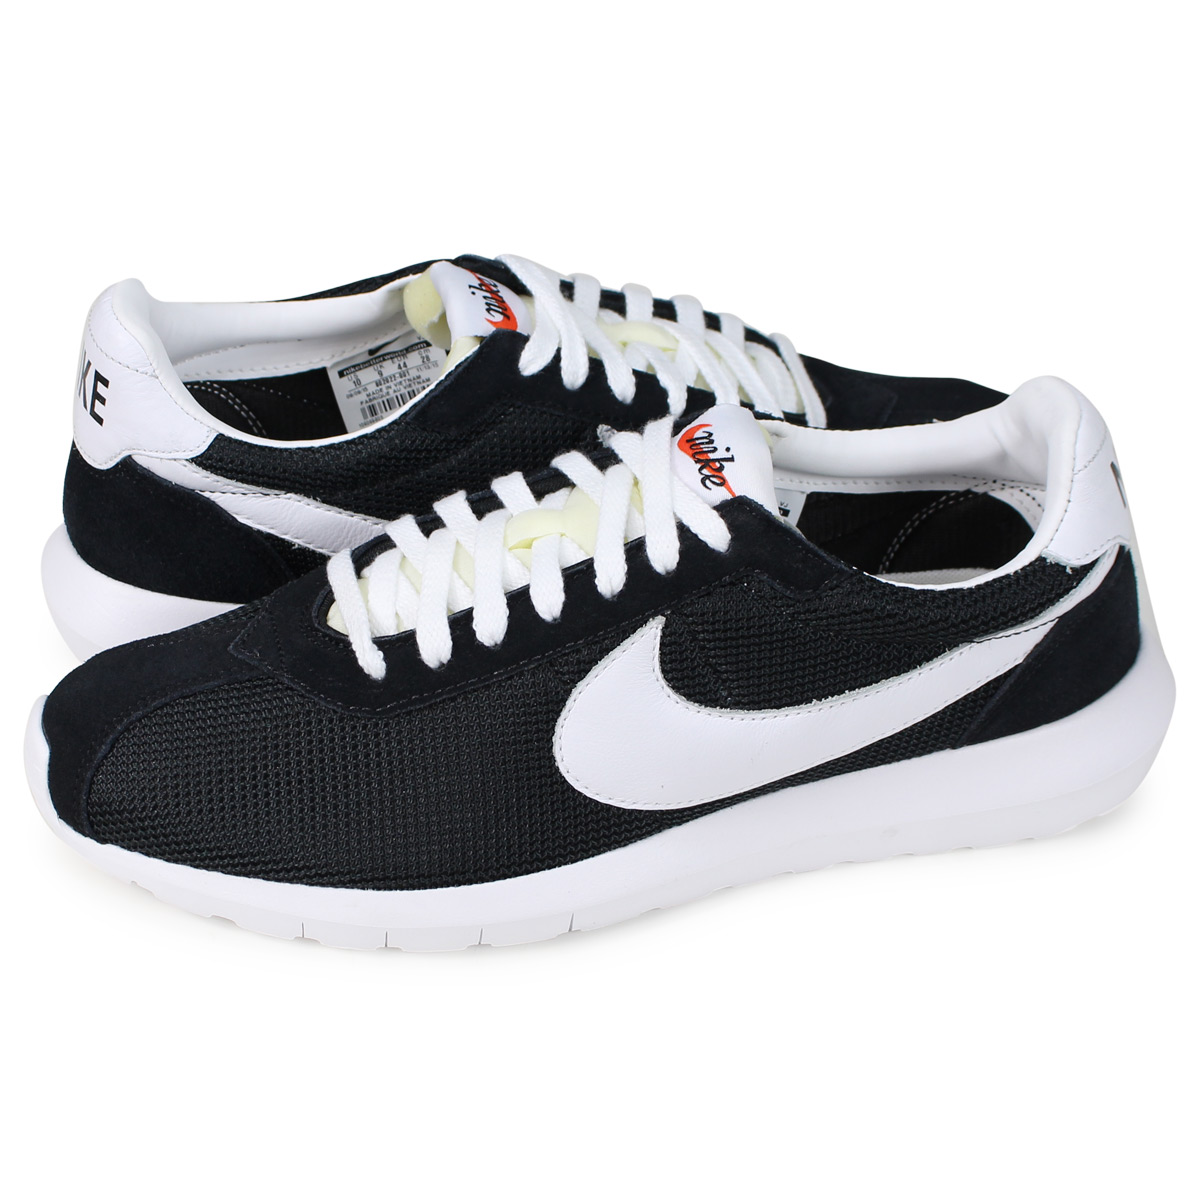 quality design 11e8e f48c7  brand NIKE getting high popularity from sneakers freak